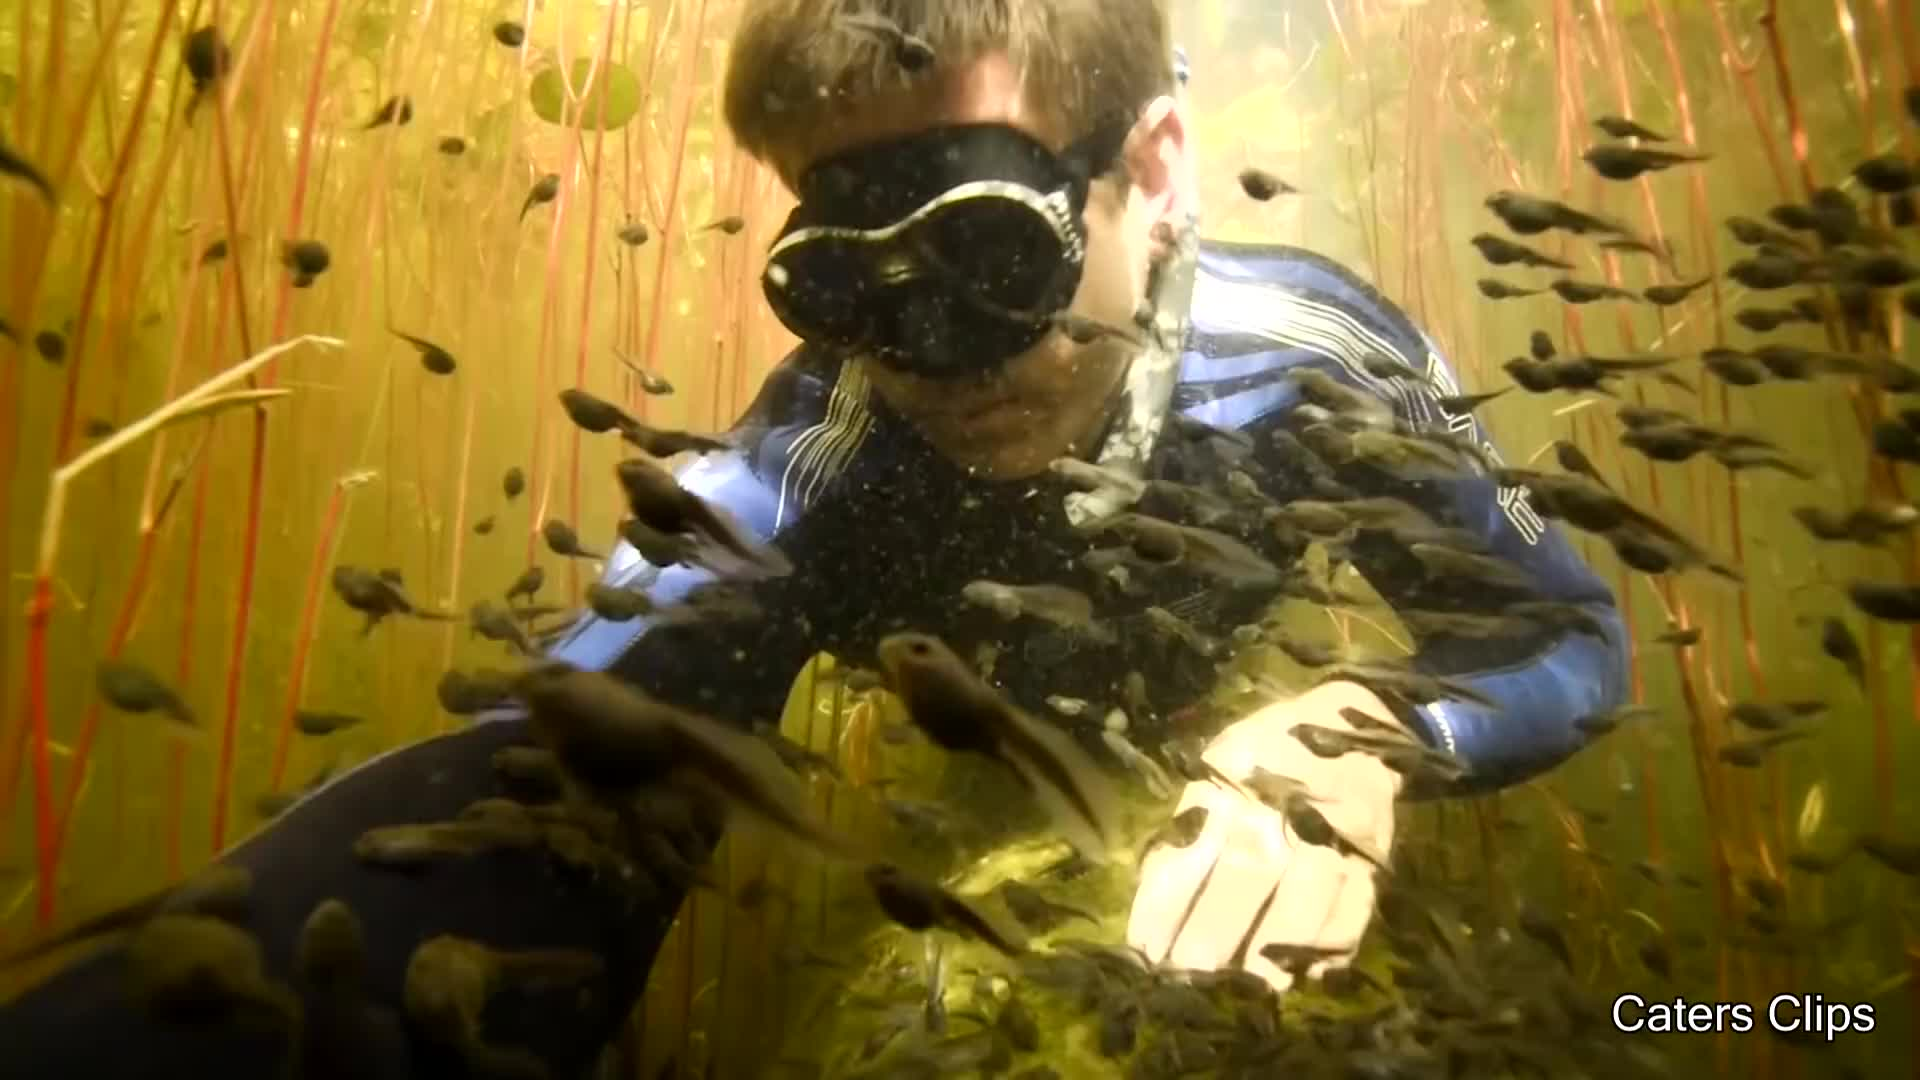 Daily Dose of Internet, nature, Diver Discovers Tadpole Paradise GIFs